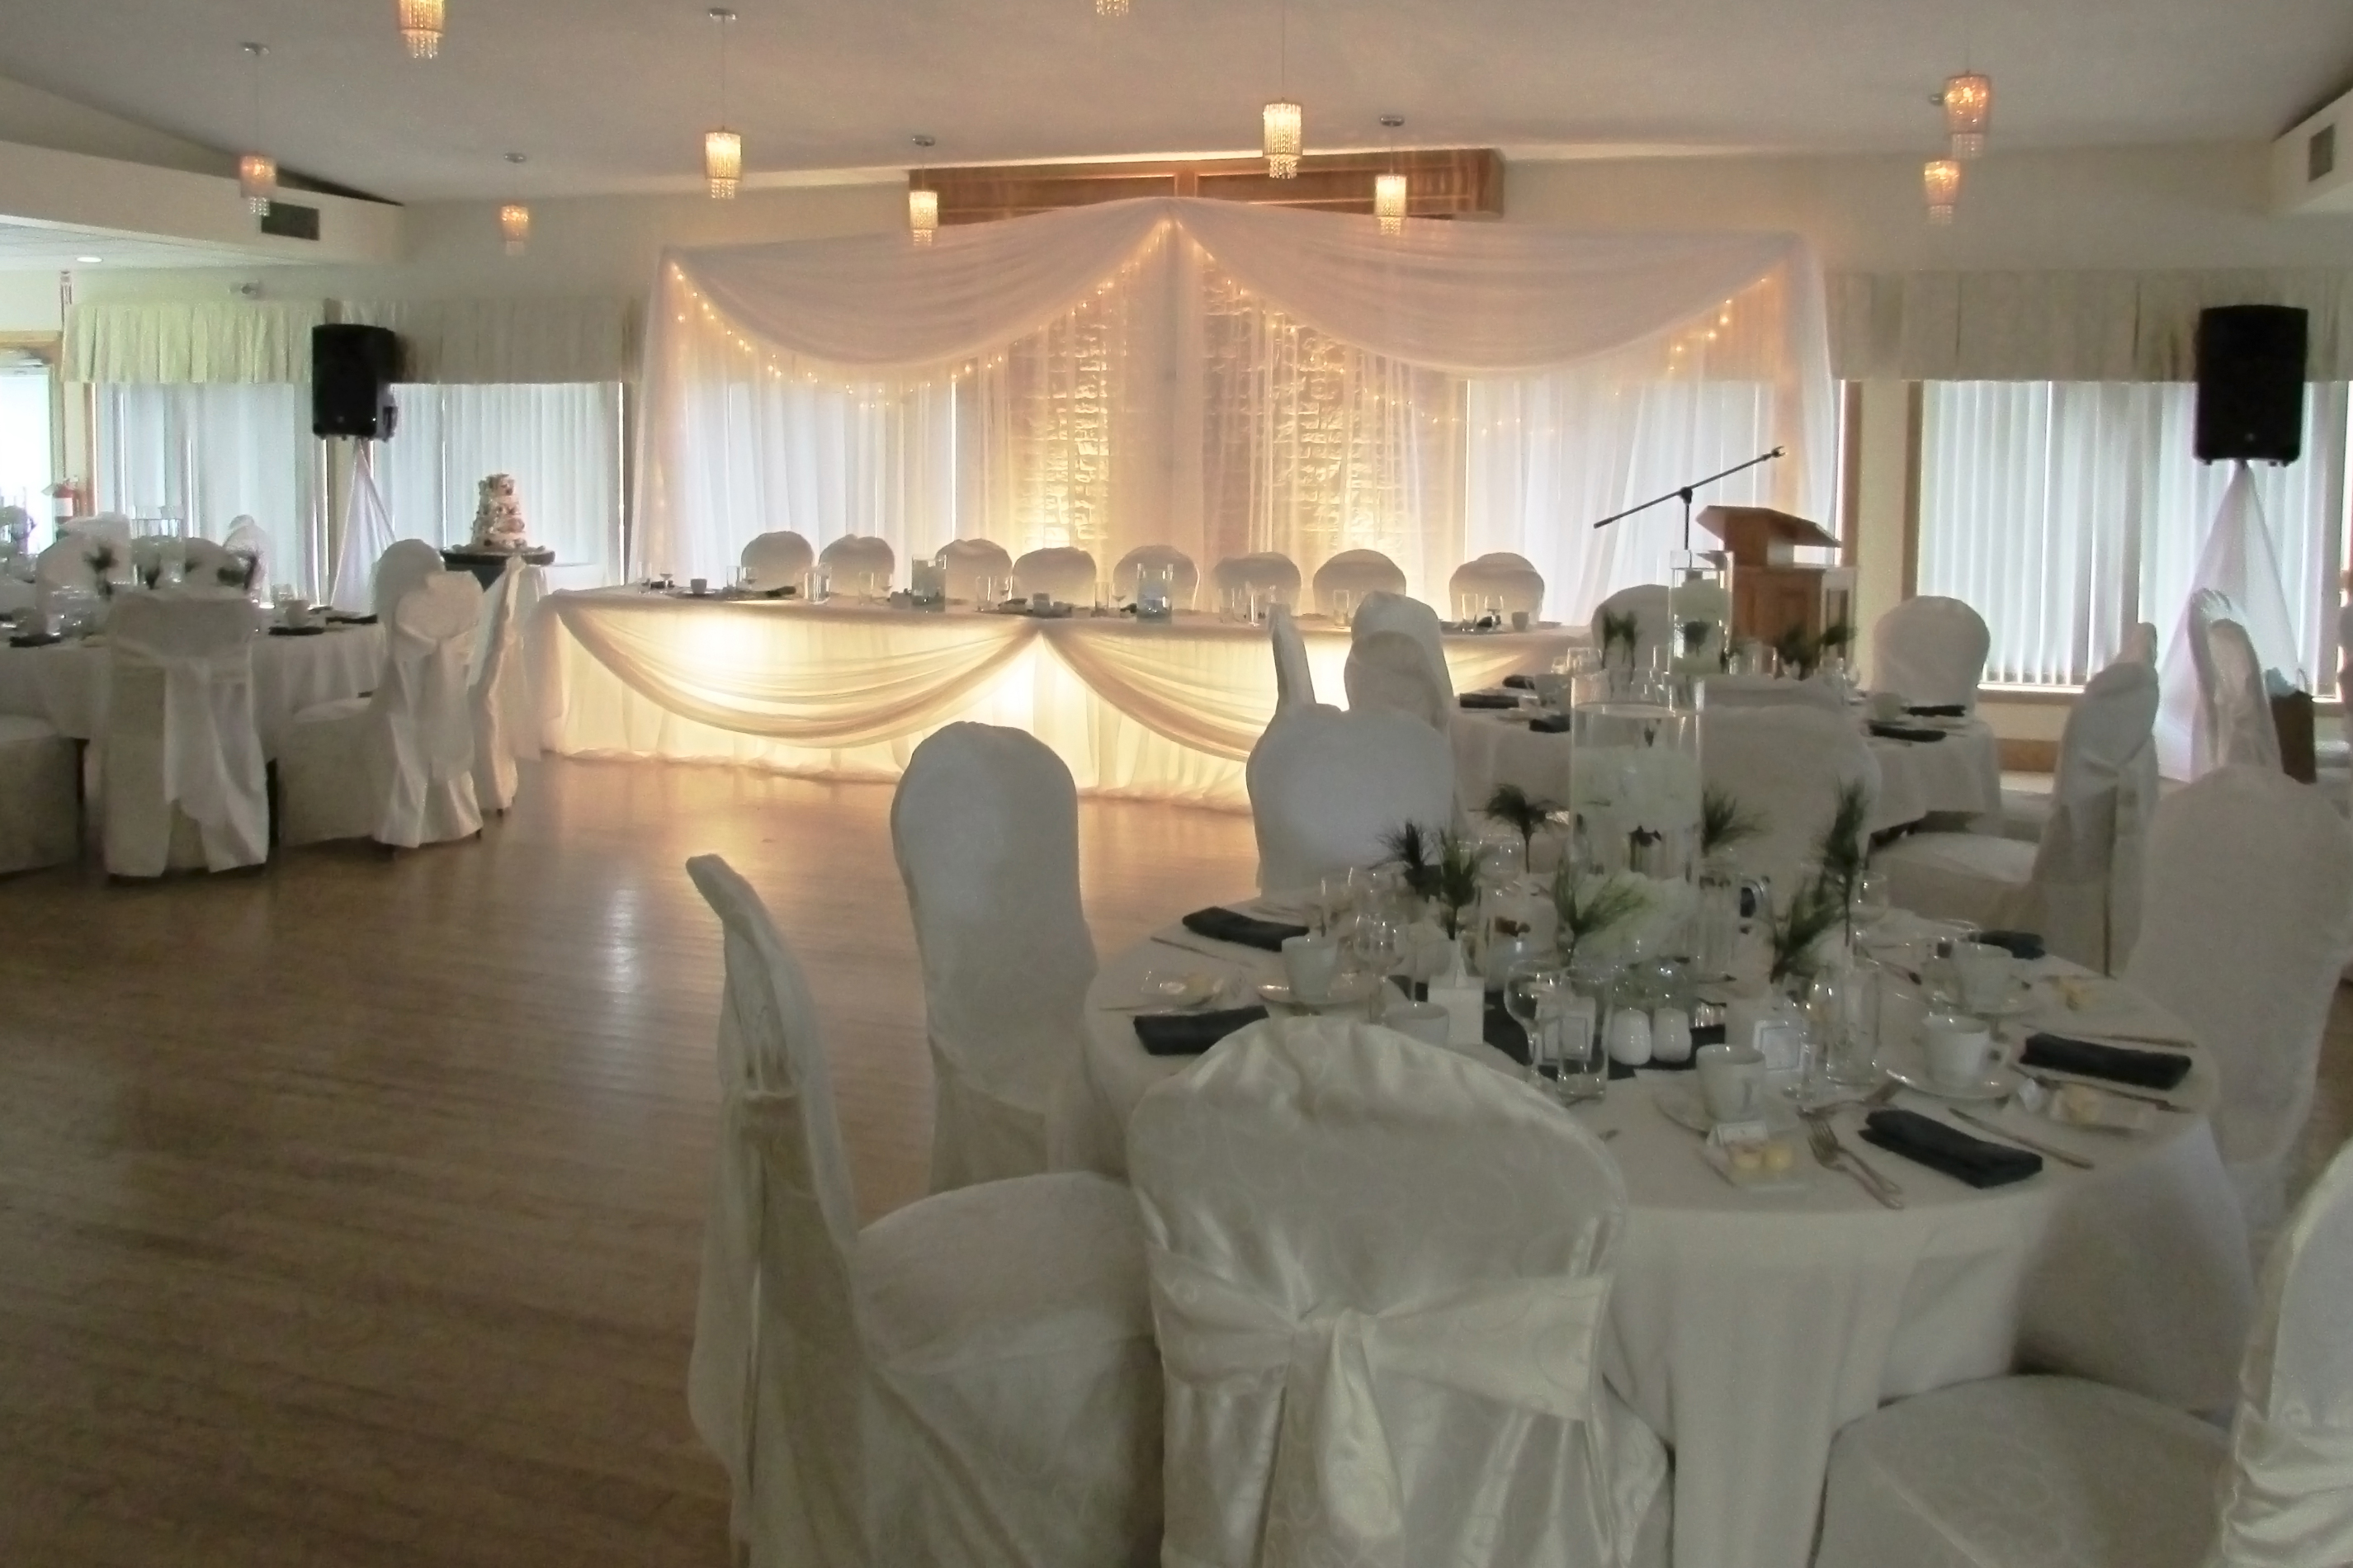 Monora Park Pavilion Banquet Room set up for wedding